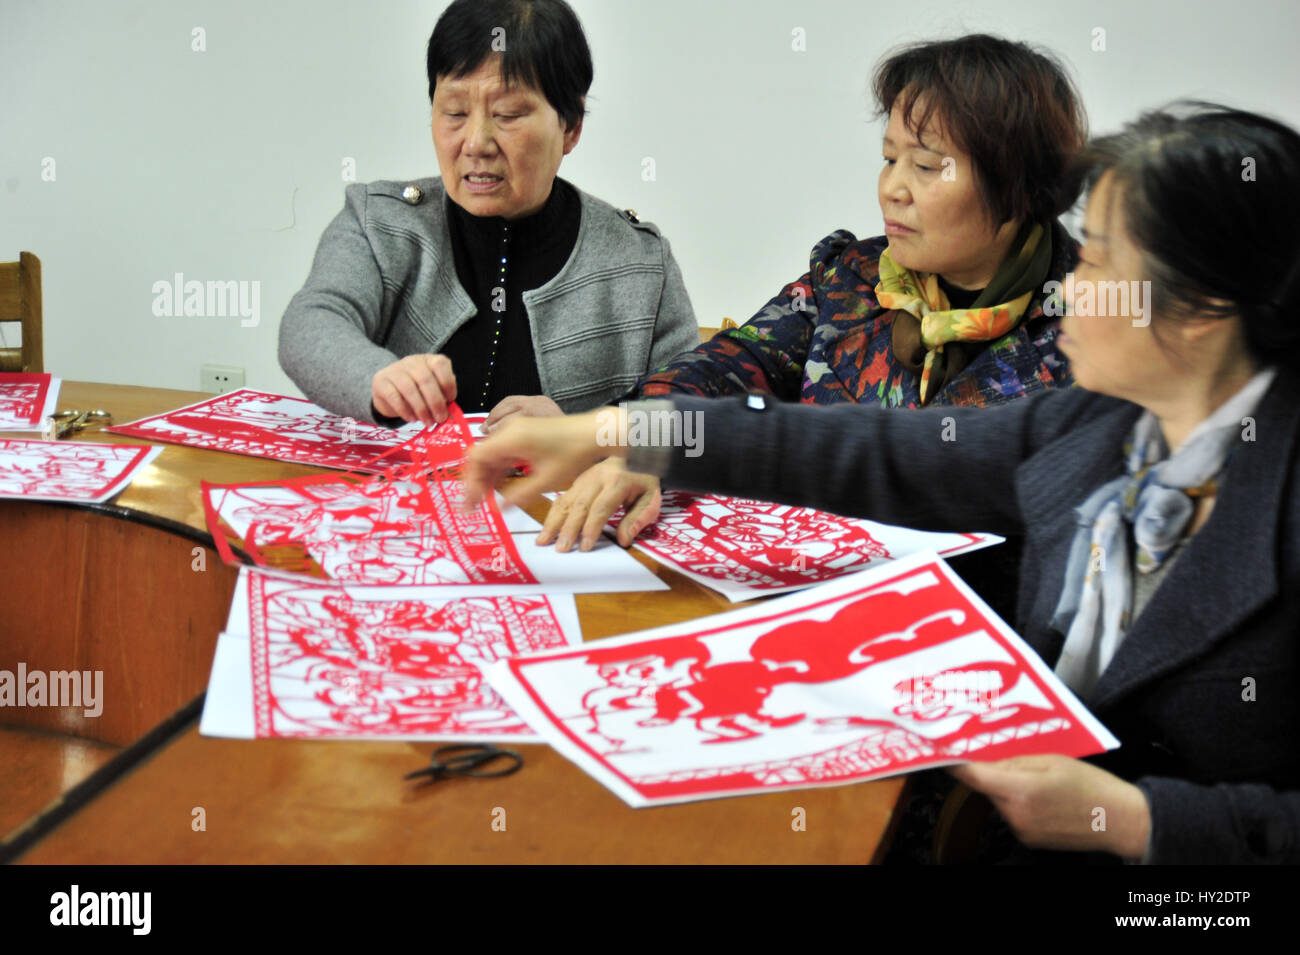 Hangzh, Hangzh, China. 31st Mar, 2017. Hangzhou, CHINA-March 31 2017: (EDITORIAL USE ONLY. CHINA OUT).Elder officials - Stock Image